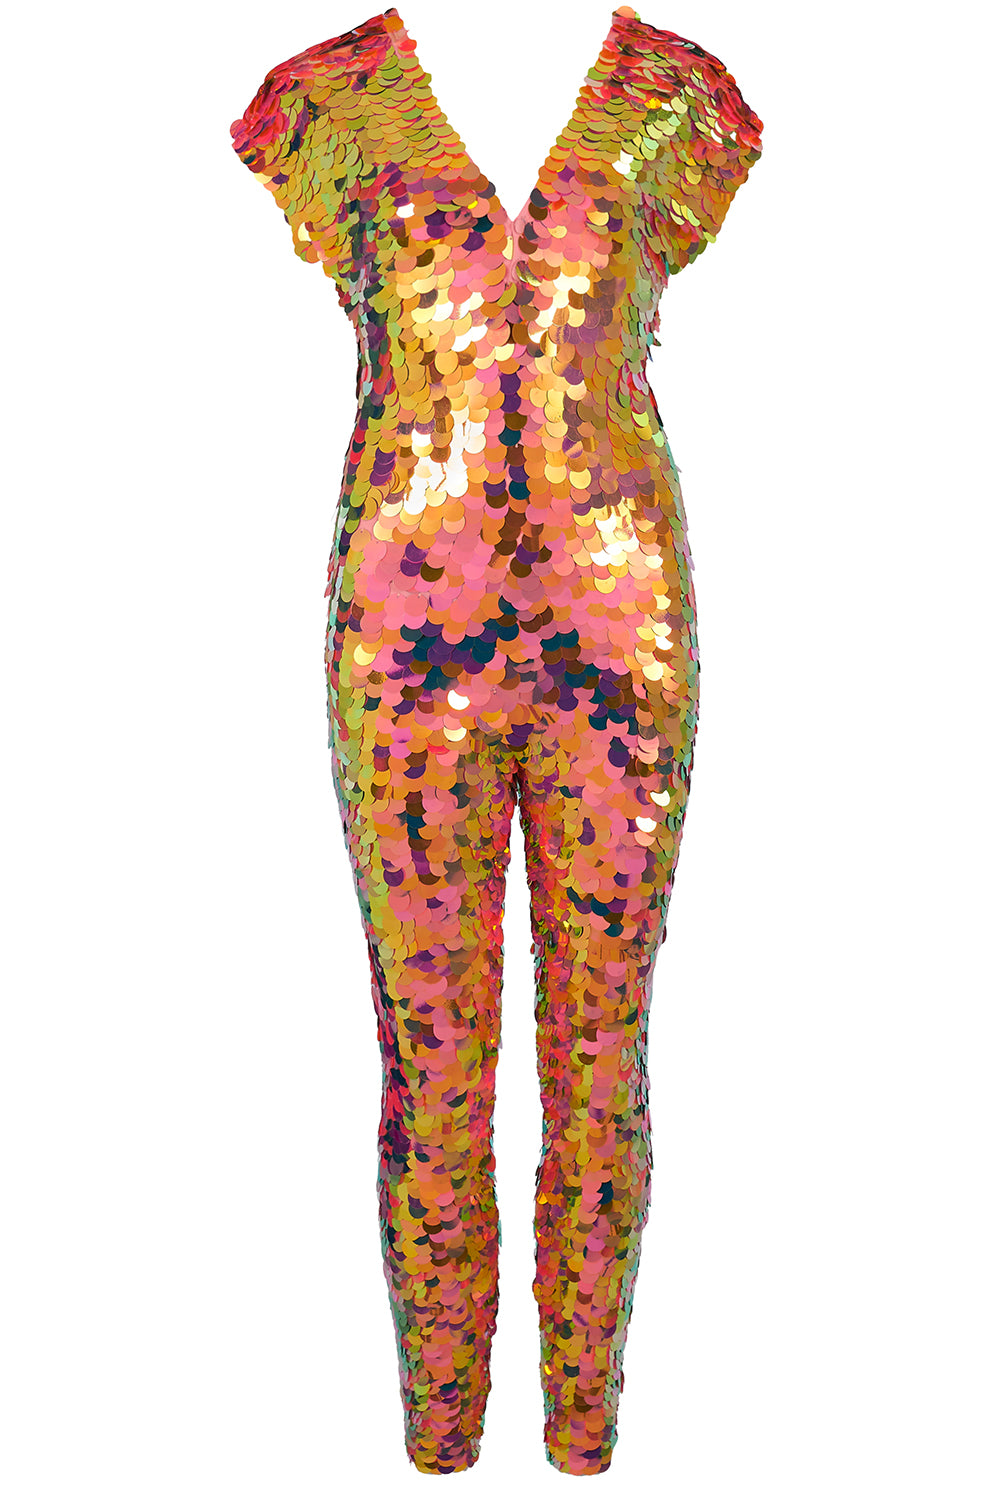 Jumpsuit covered in large round iridescent orange sequins